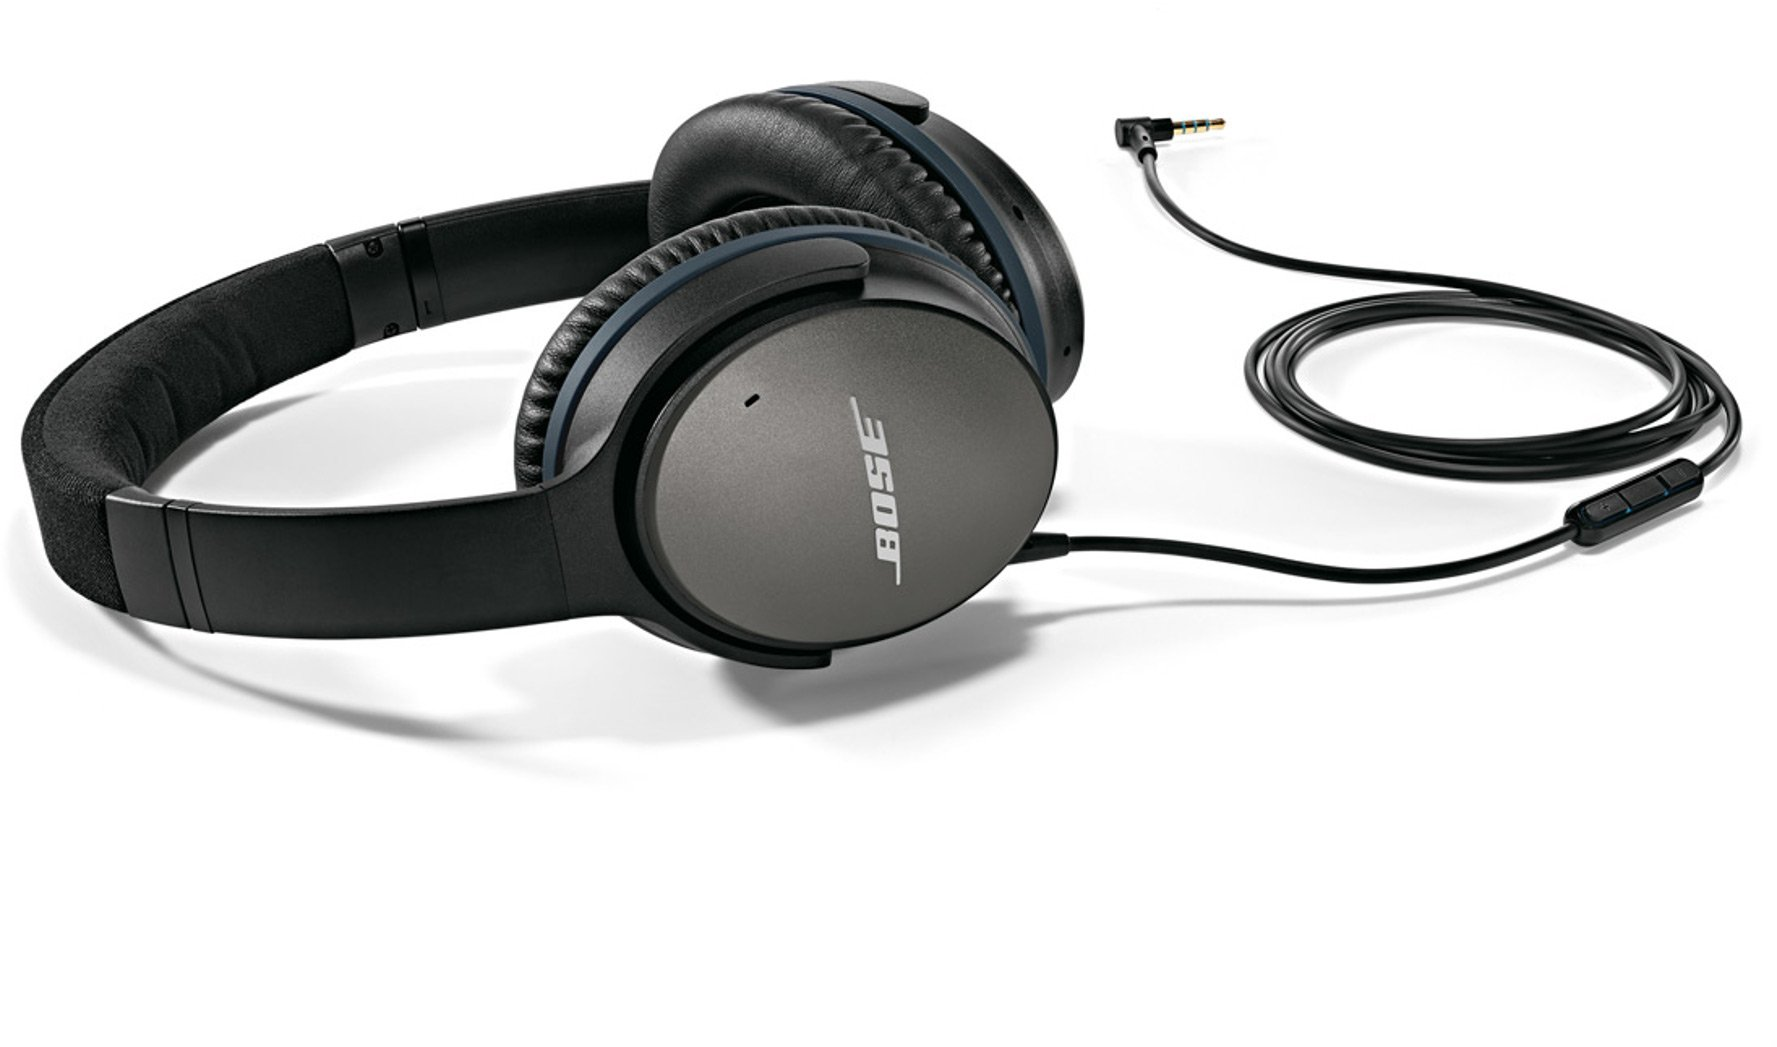 Bose QuietComfort 25 Acoustic Noise Cancelling Headphones for Apple devices - Black (wired, 3.5mm) by Bose (Image #14)